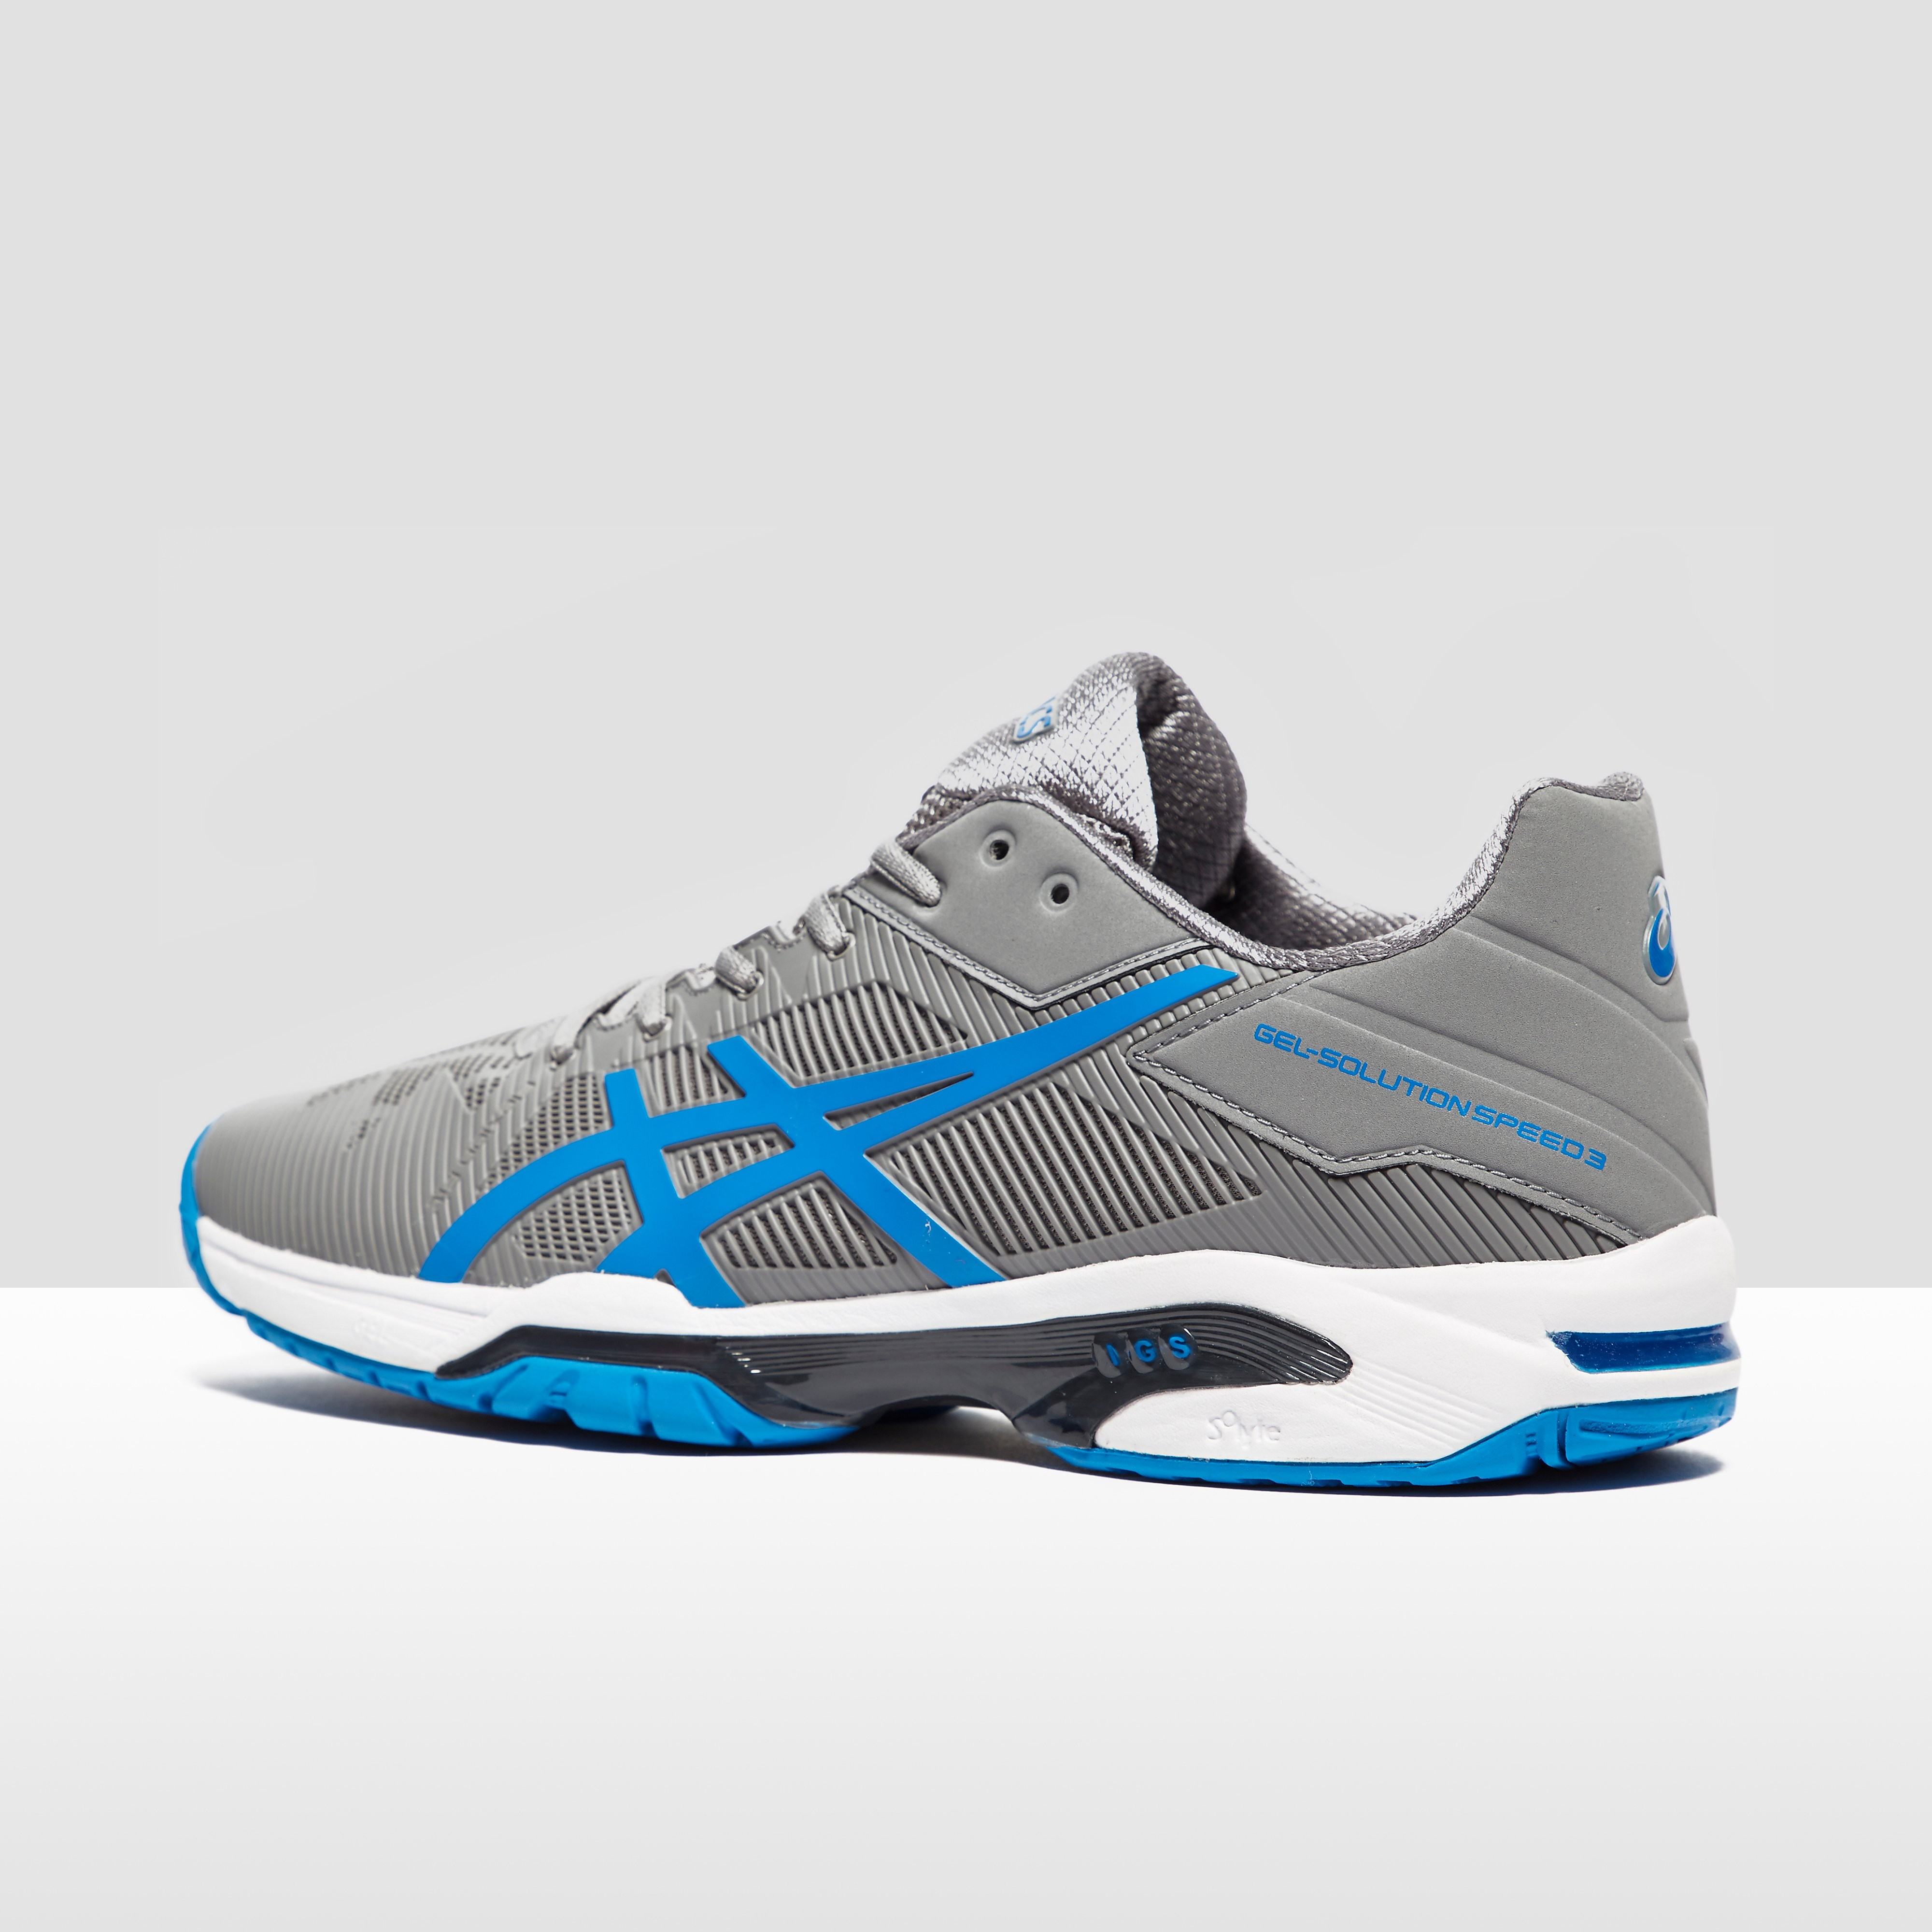 ASICS Gel-Solution Speed 3 Men's Tennis Shoes